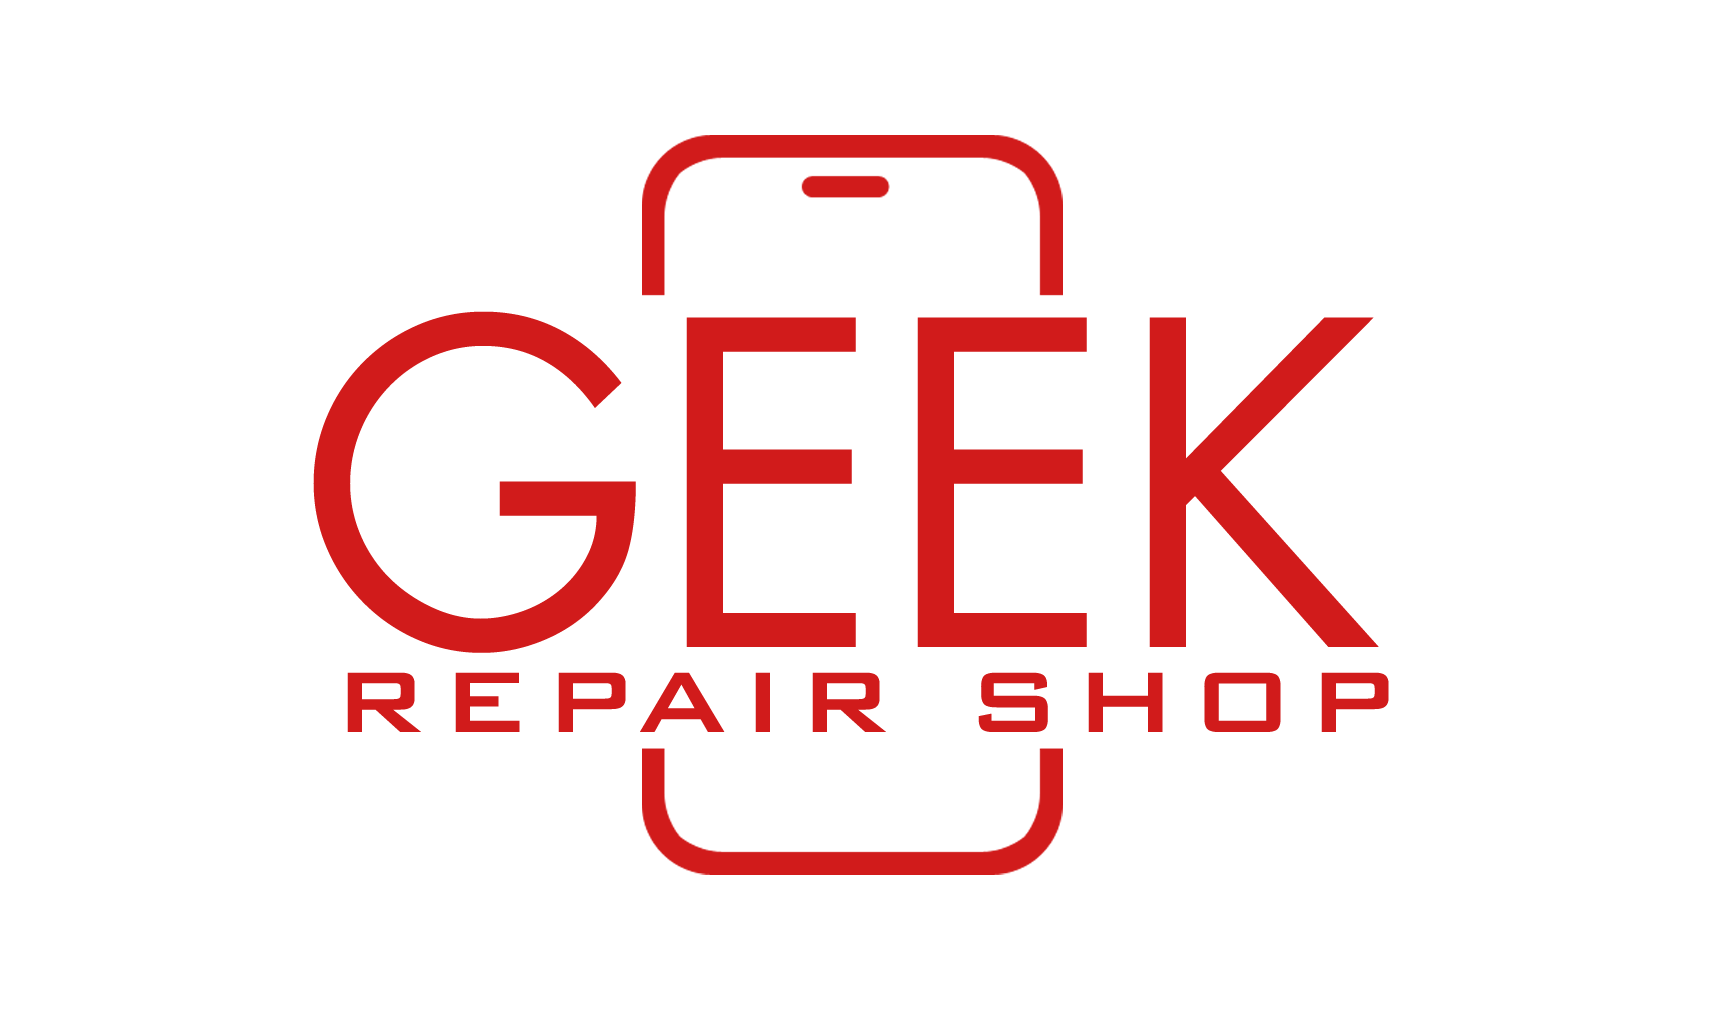 geek repair shop logo